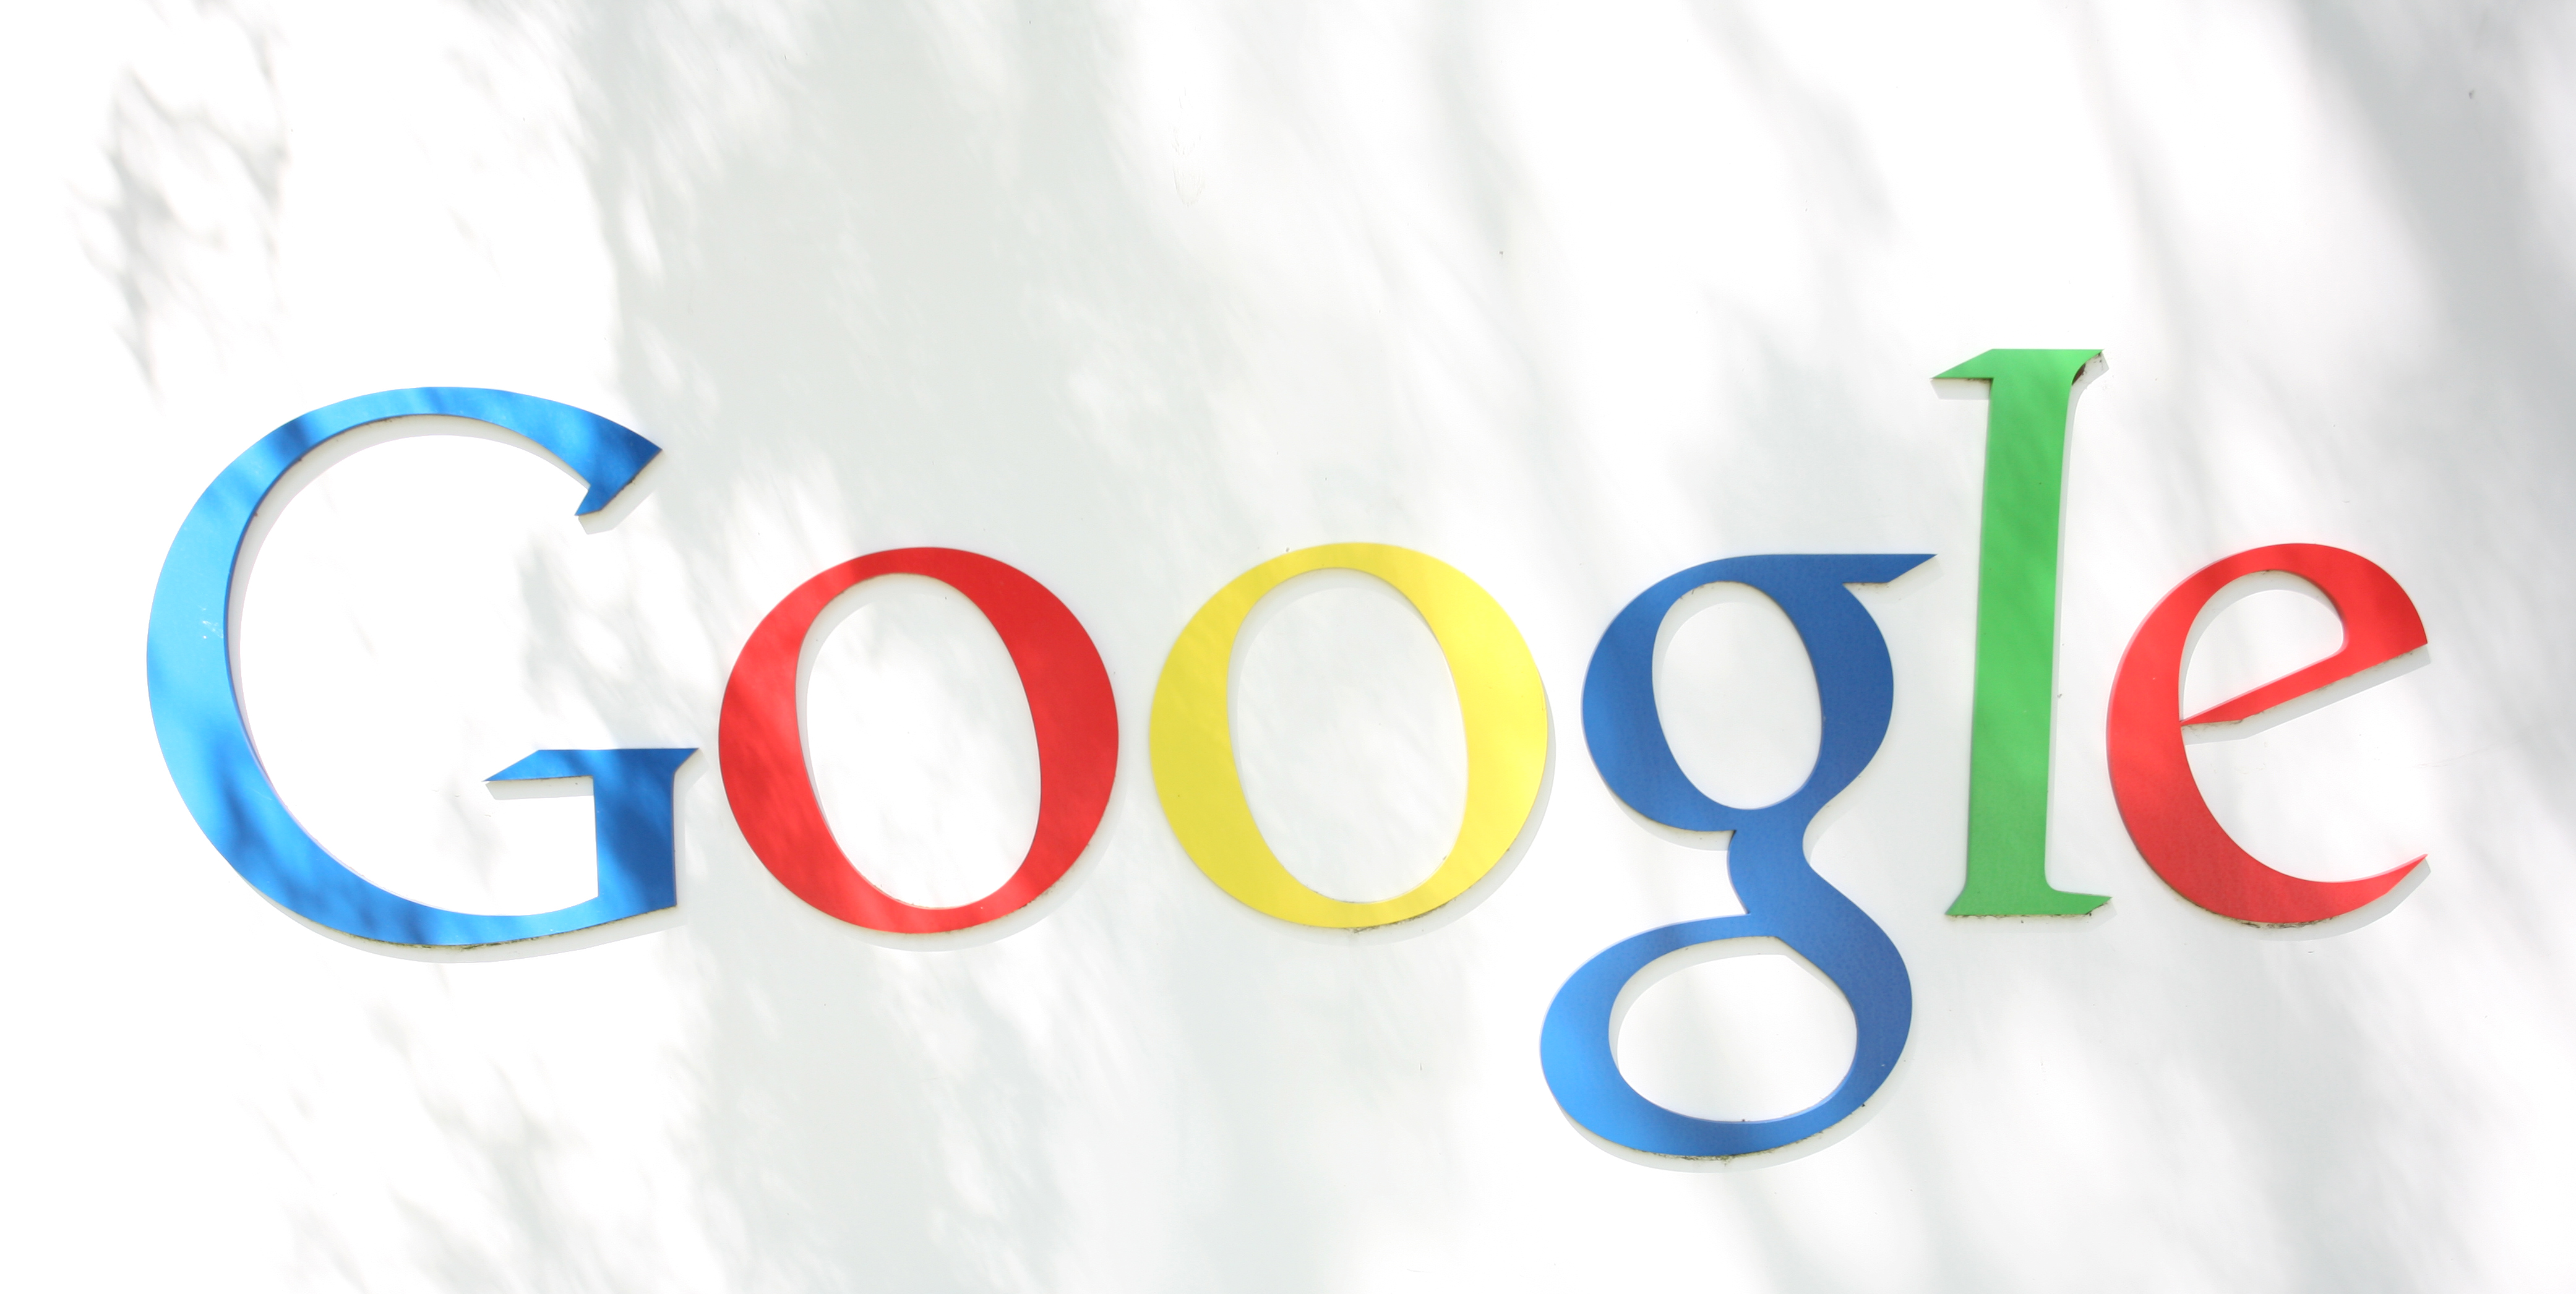 Google Finance Expands to Spain, Poland, South Africa, Argentina